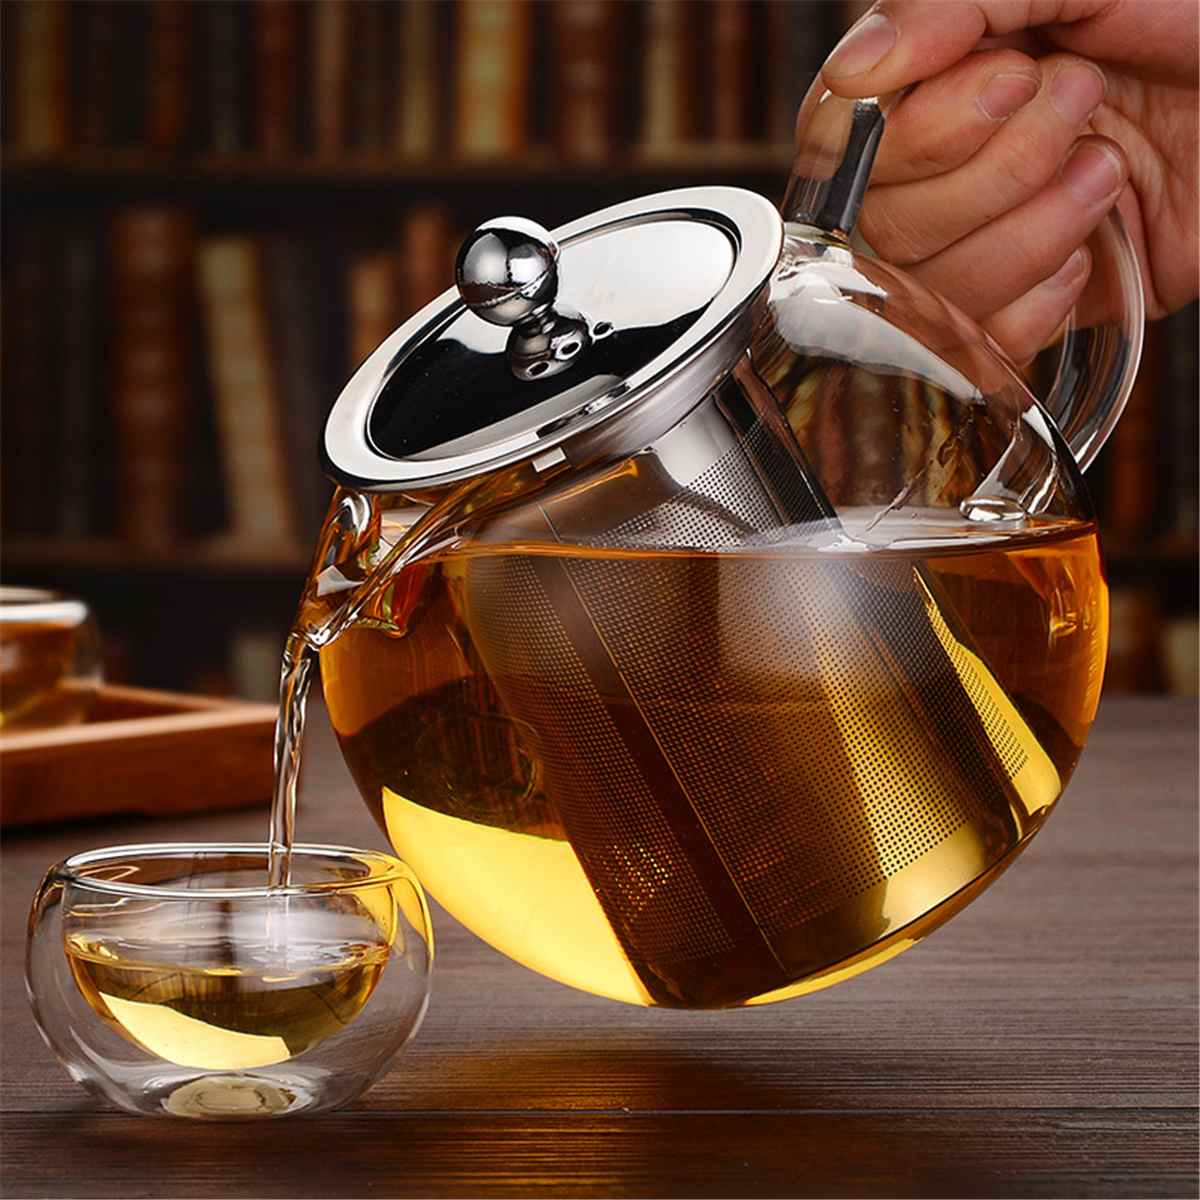 600/950/1300ml Glass Stainless Steel Teapot with Infuser Filter Lid Heat Resistant